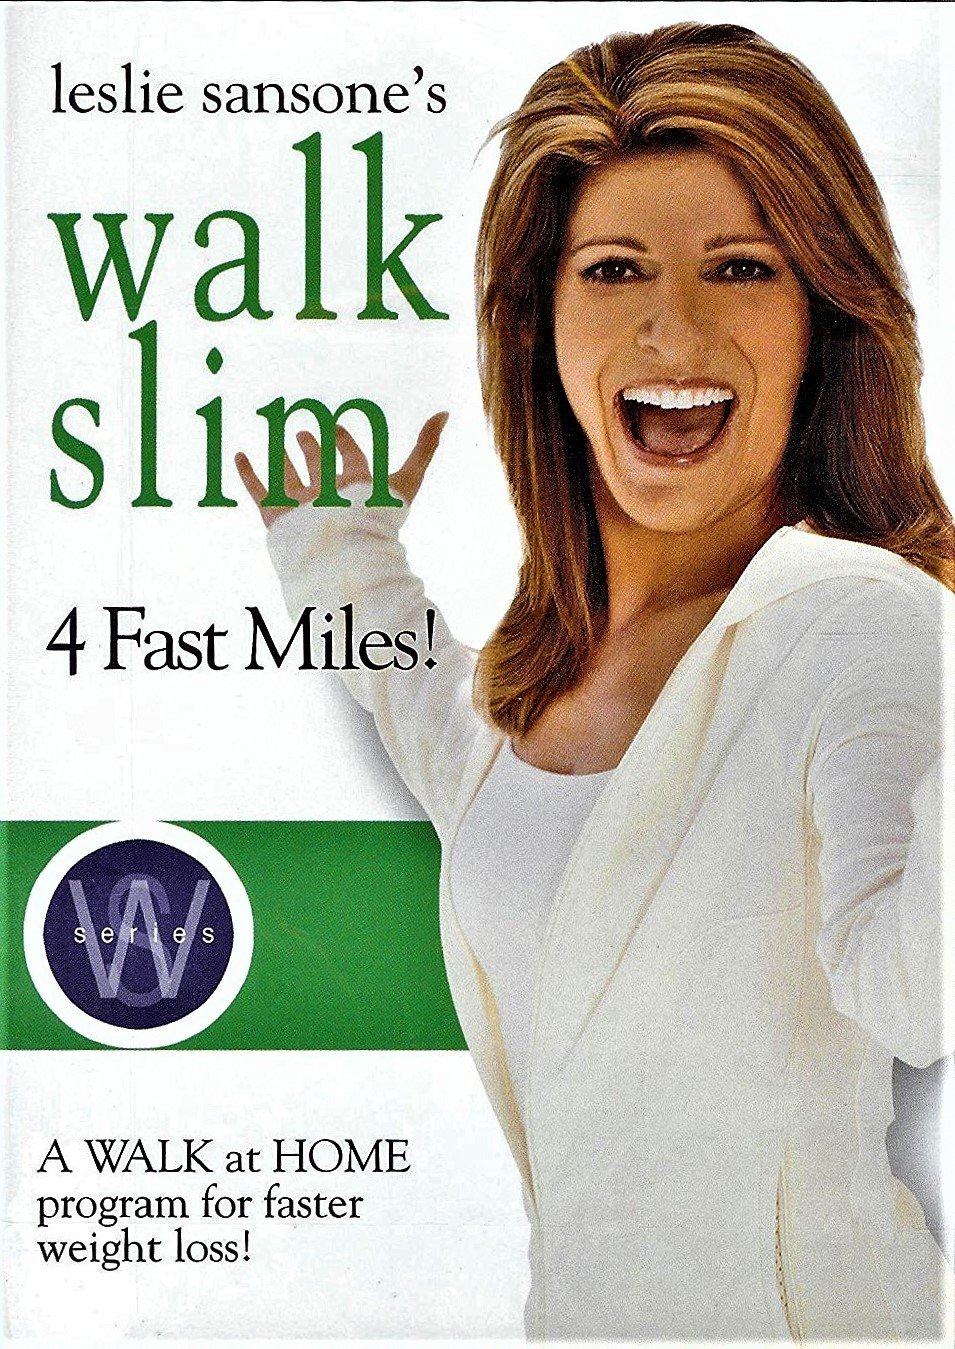 Leslie Sansone's Walk Slim 4 Fast Miles, a Walk At Home Program for Faster Weight Loss!